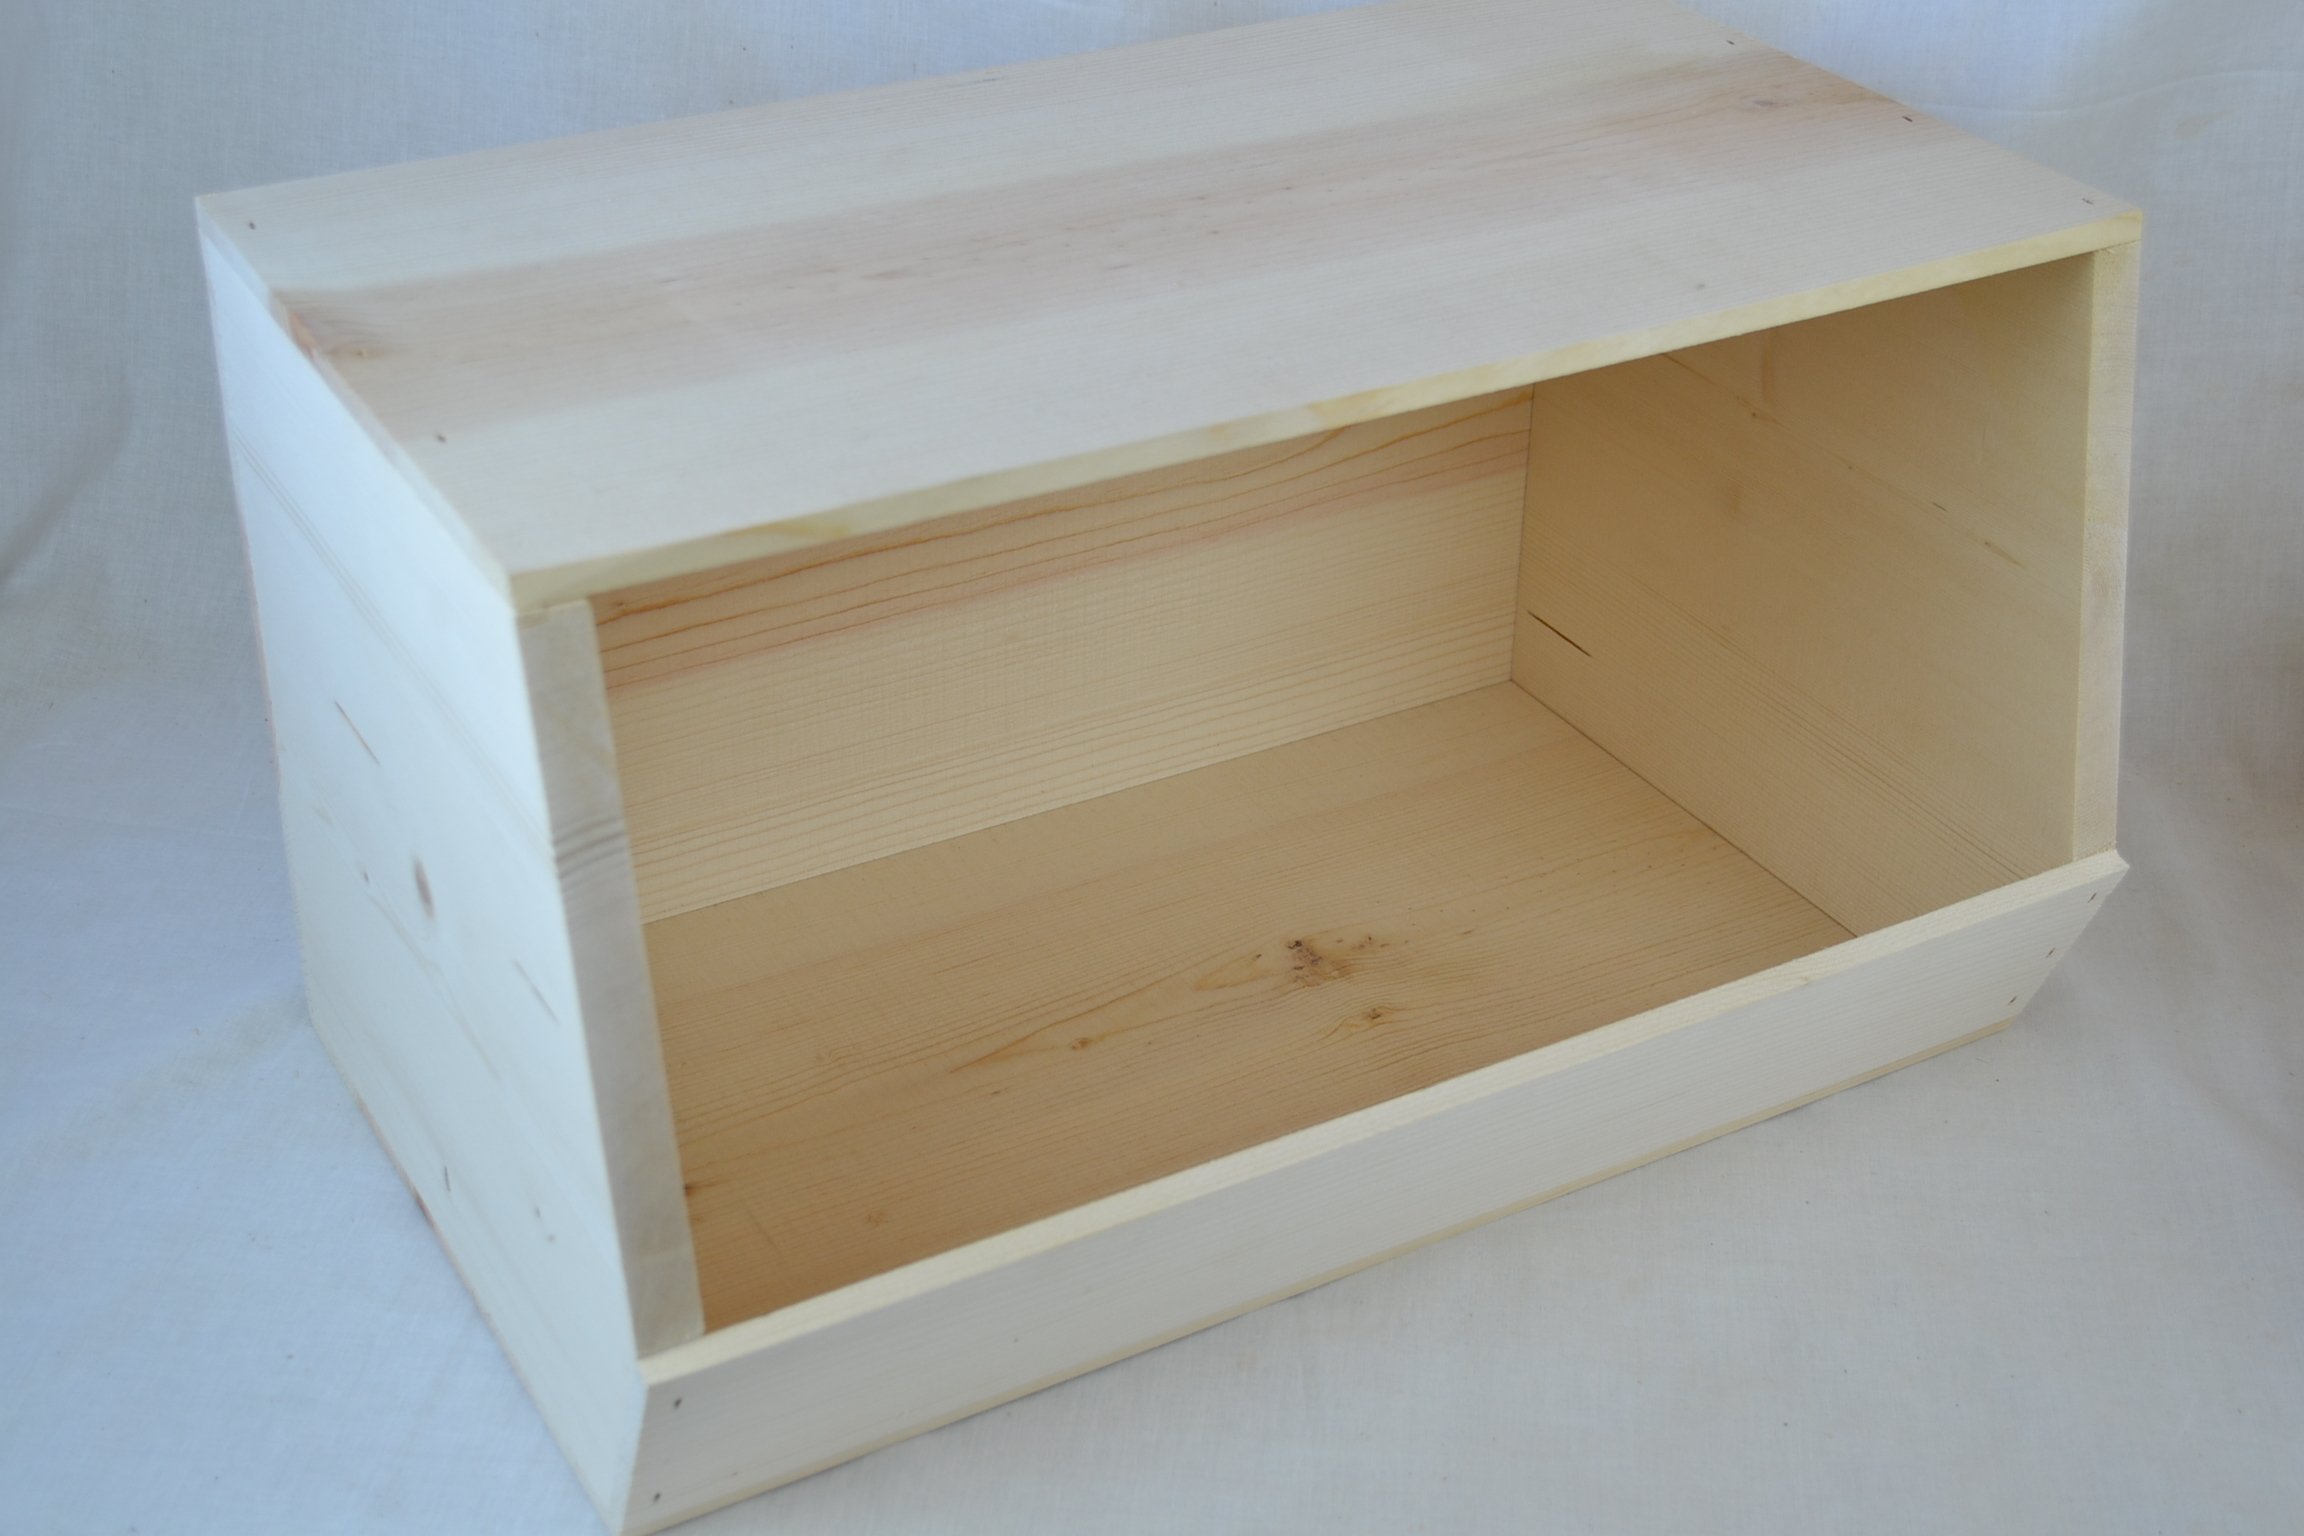 Wooden Stackable Storage Bin FREE SHIPPING On This Item!!